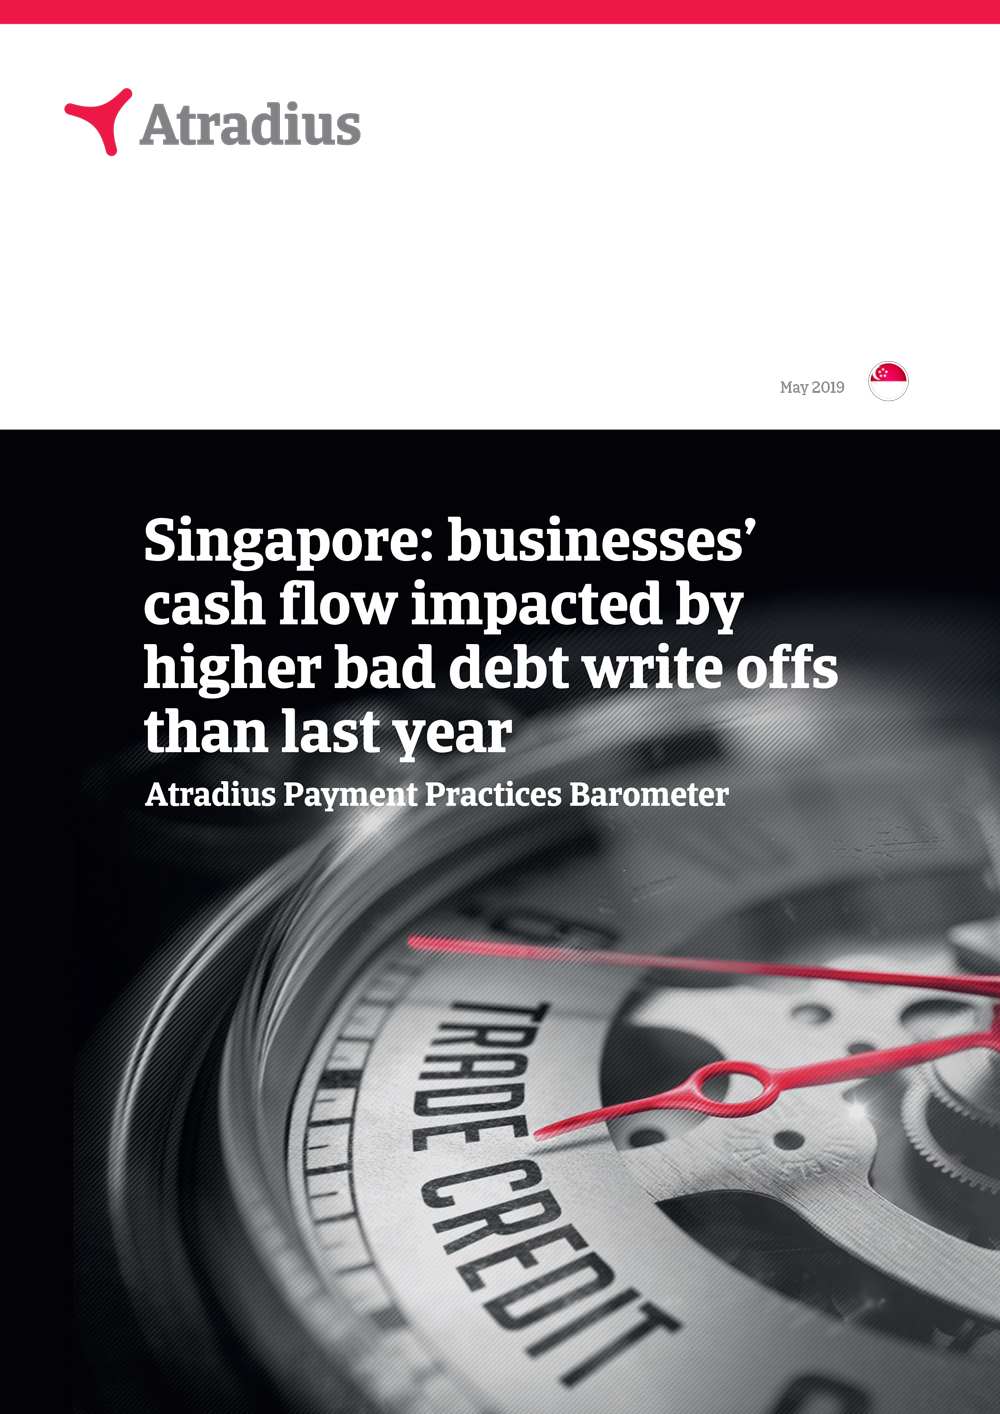 Singapore: businesses' cash flow impacted by higher bad debt write offs than last year